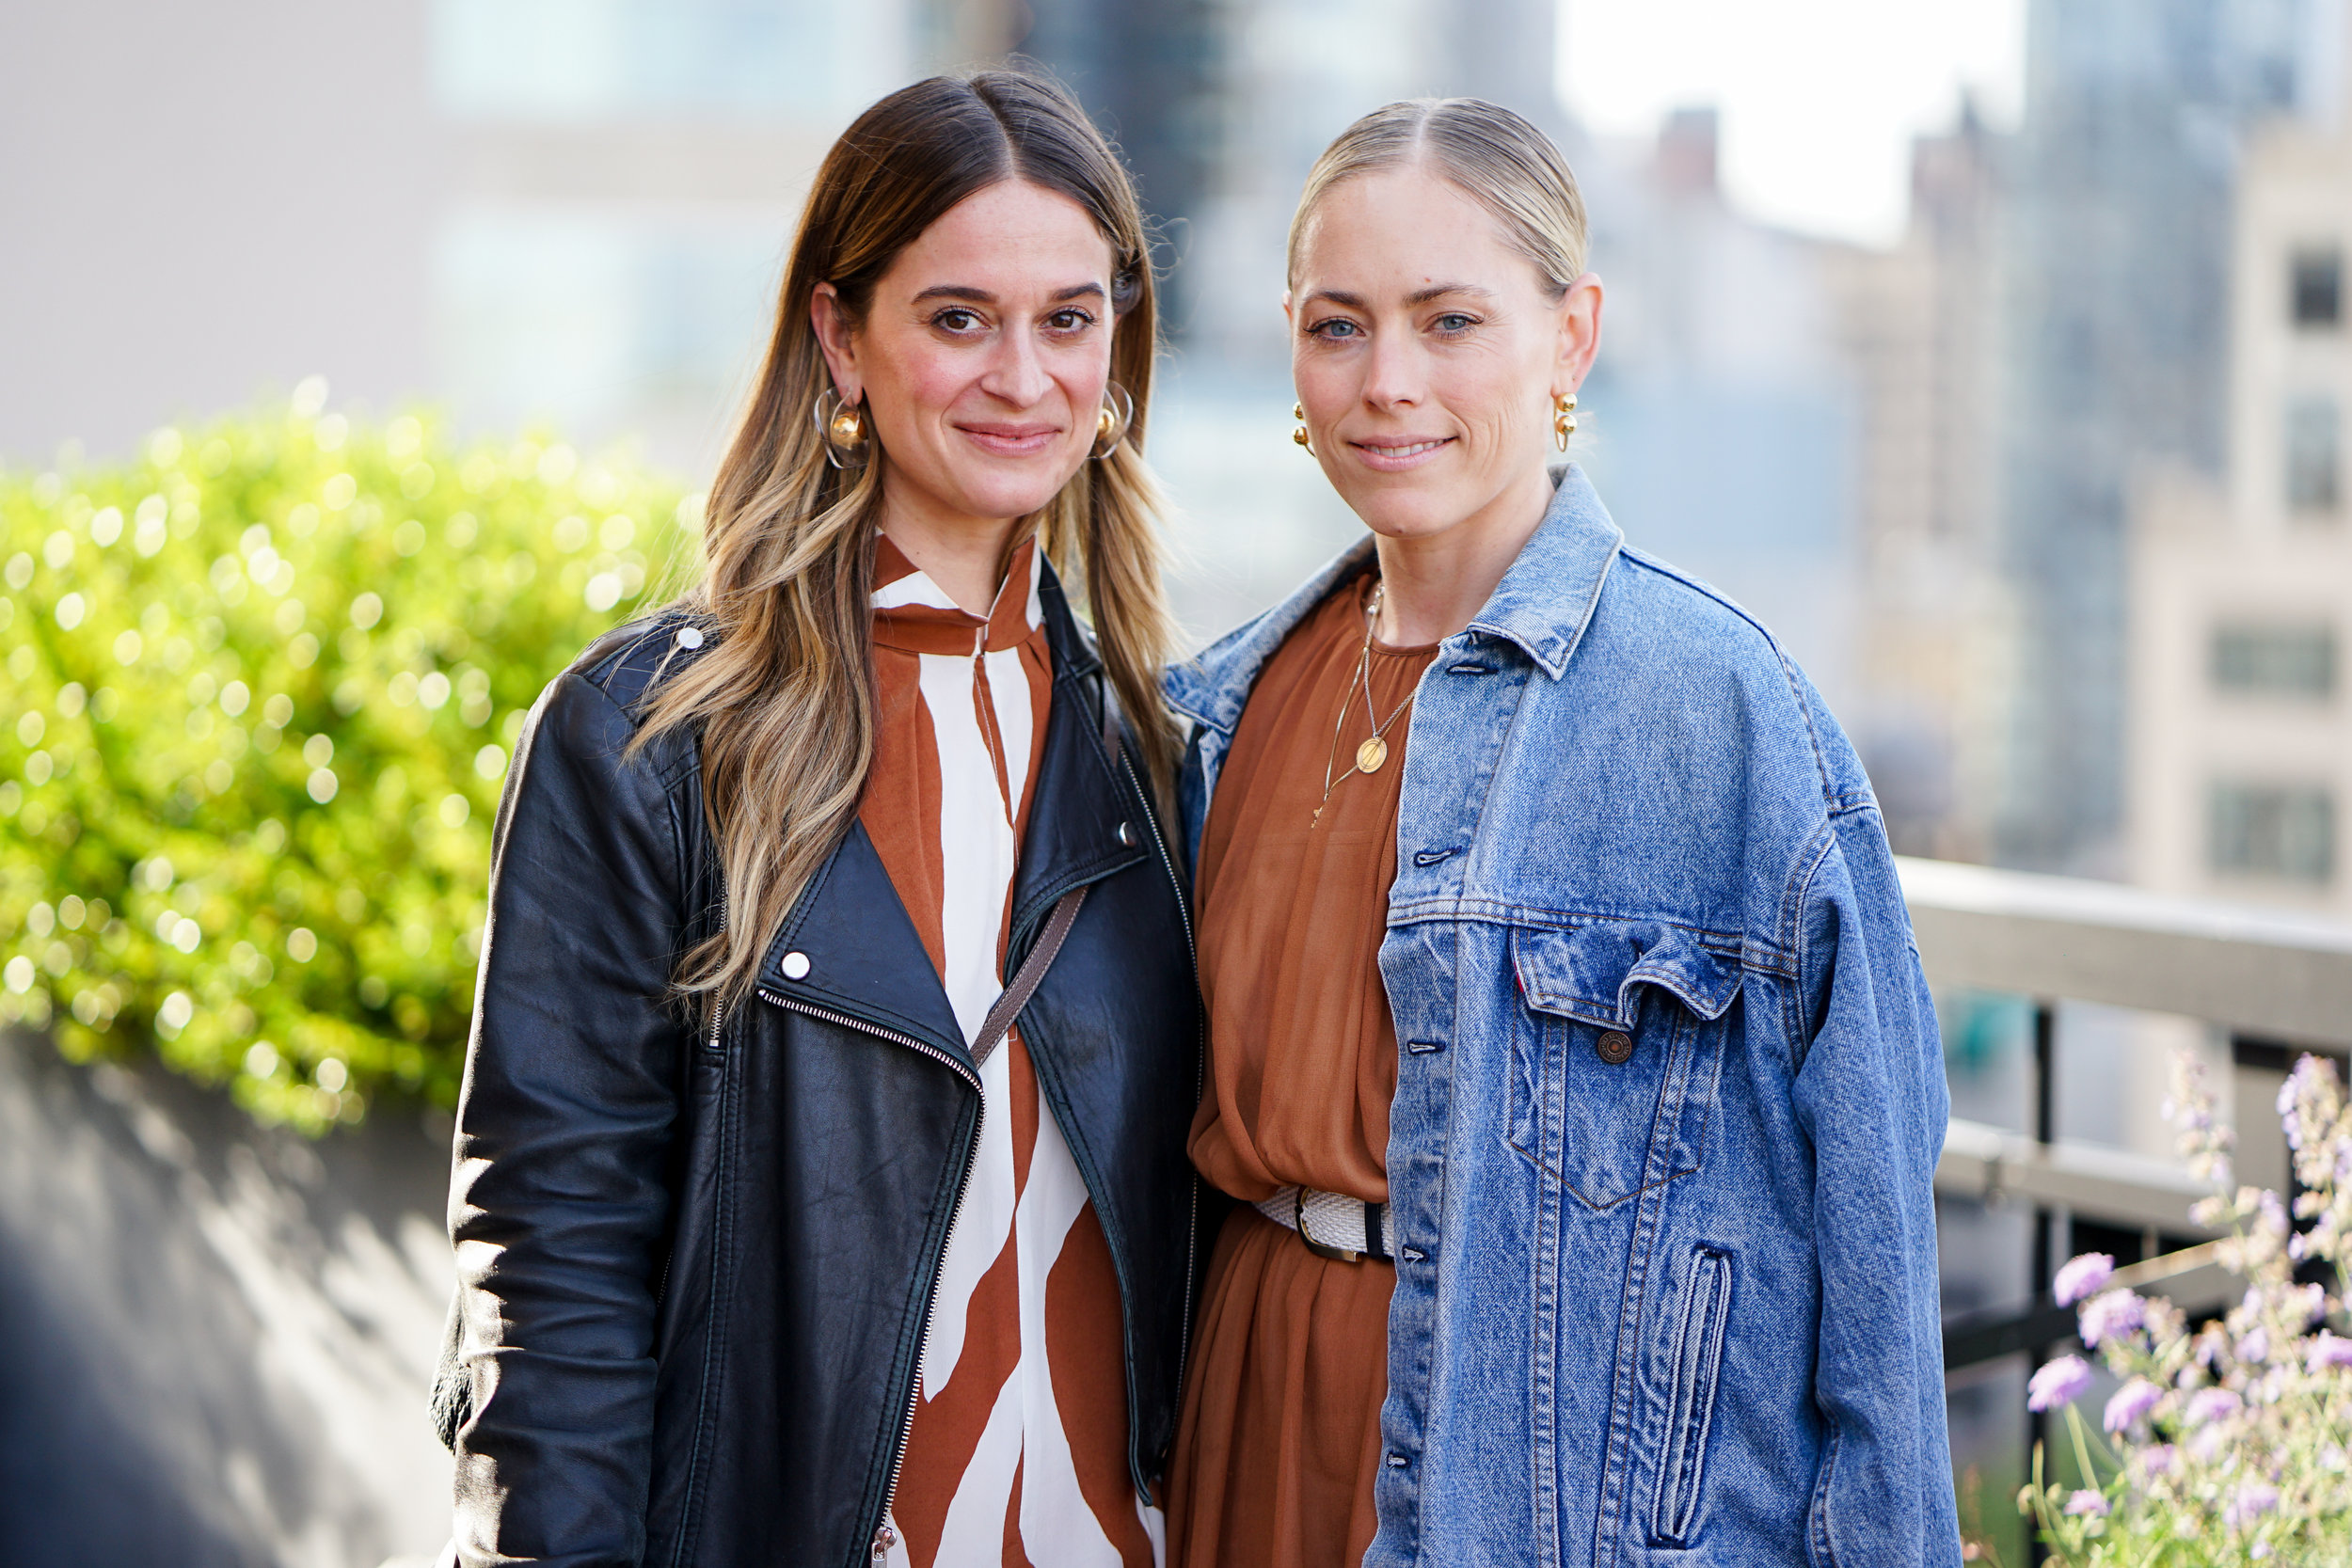 Chelsea Healy and Nicole Heim, founders of  Cienne .